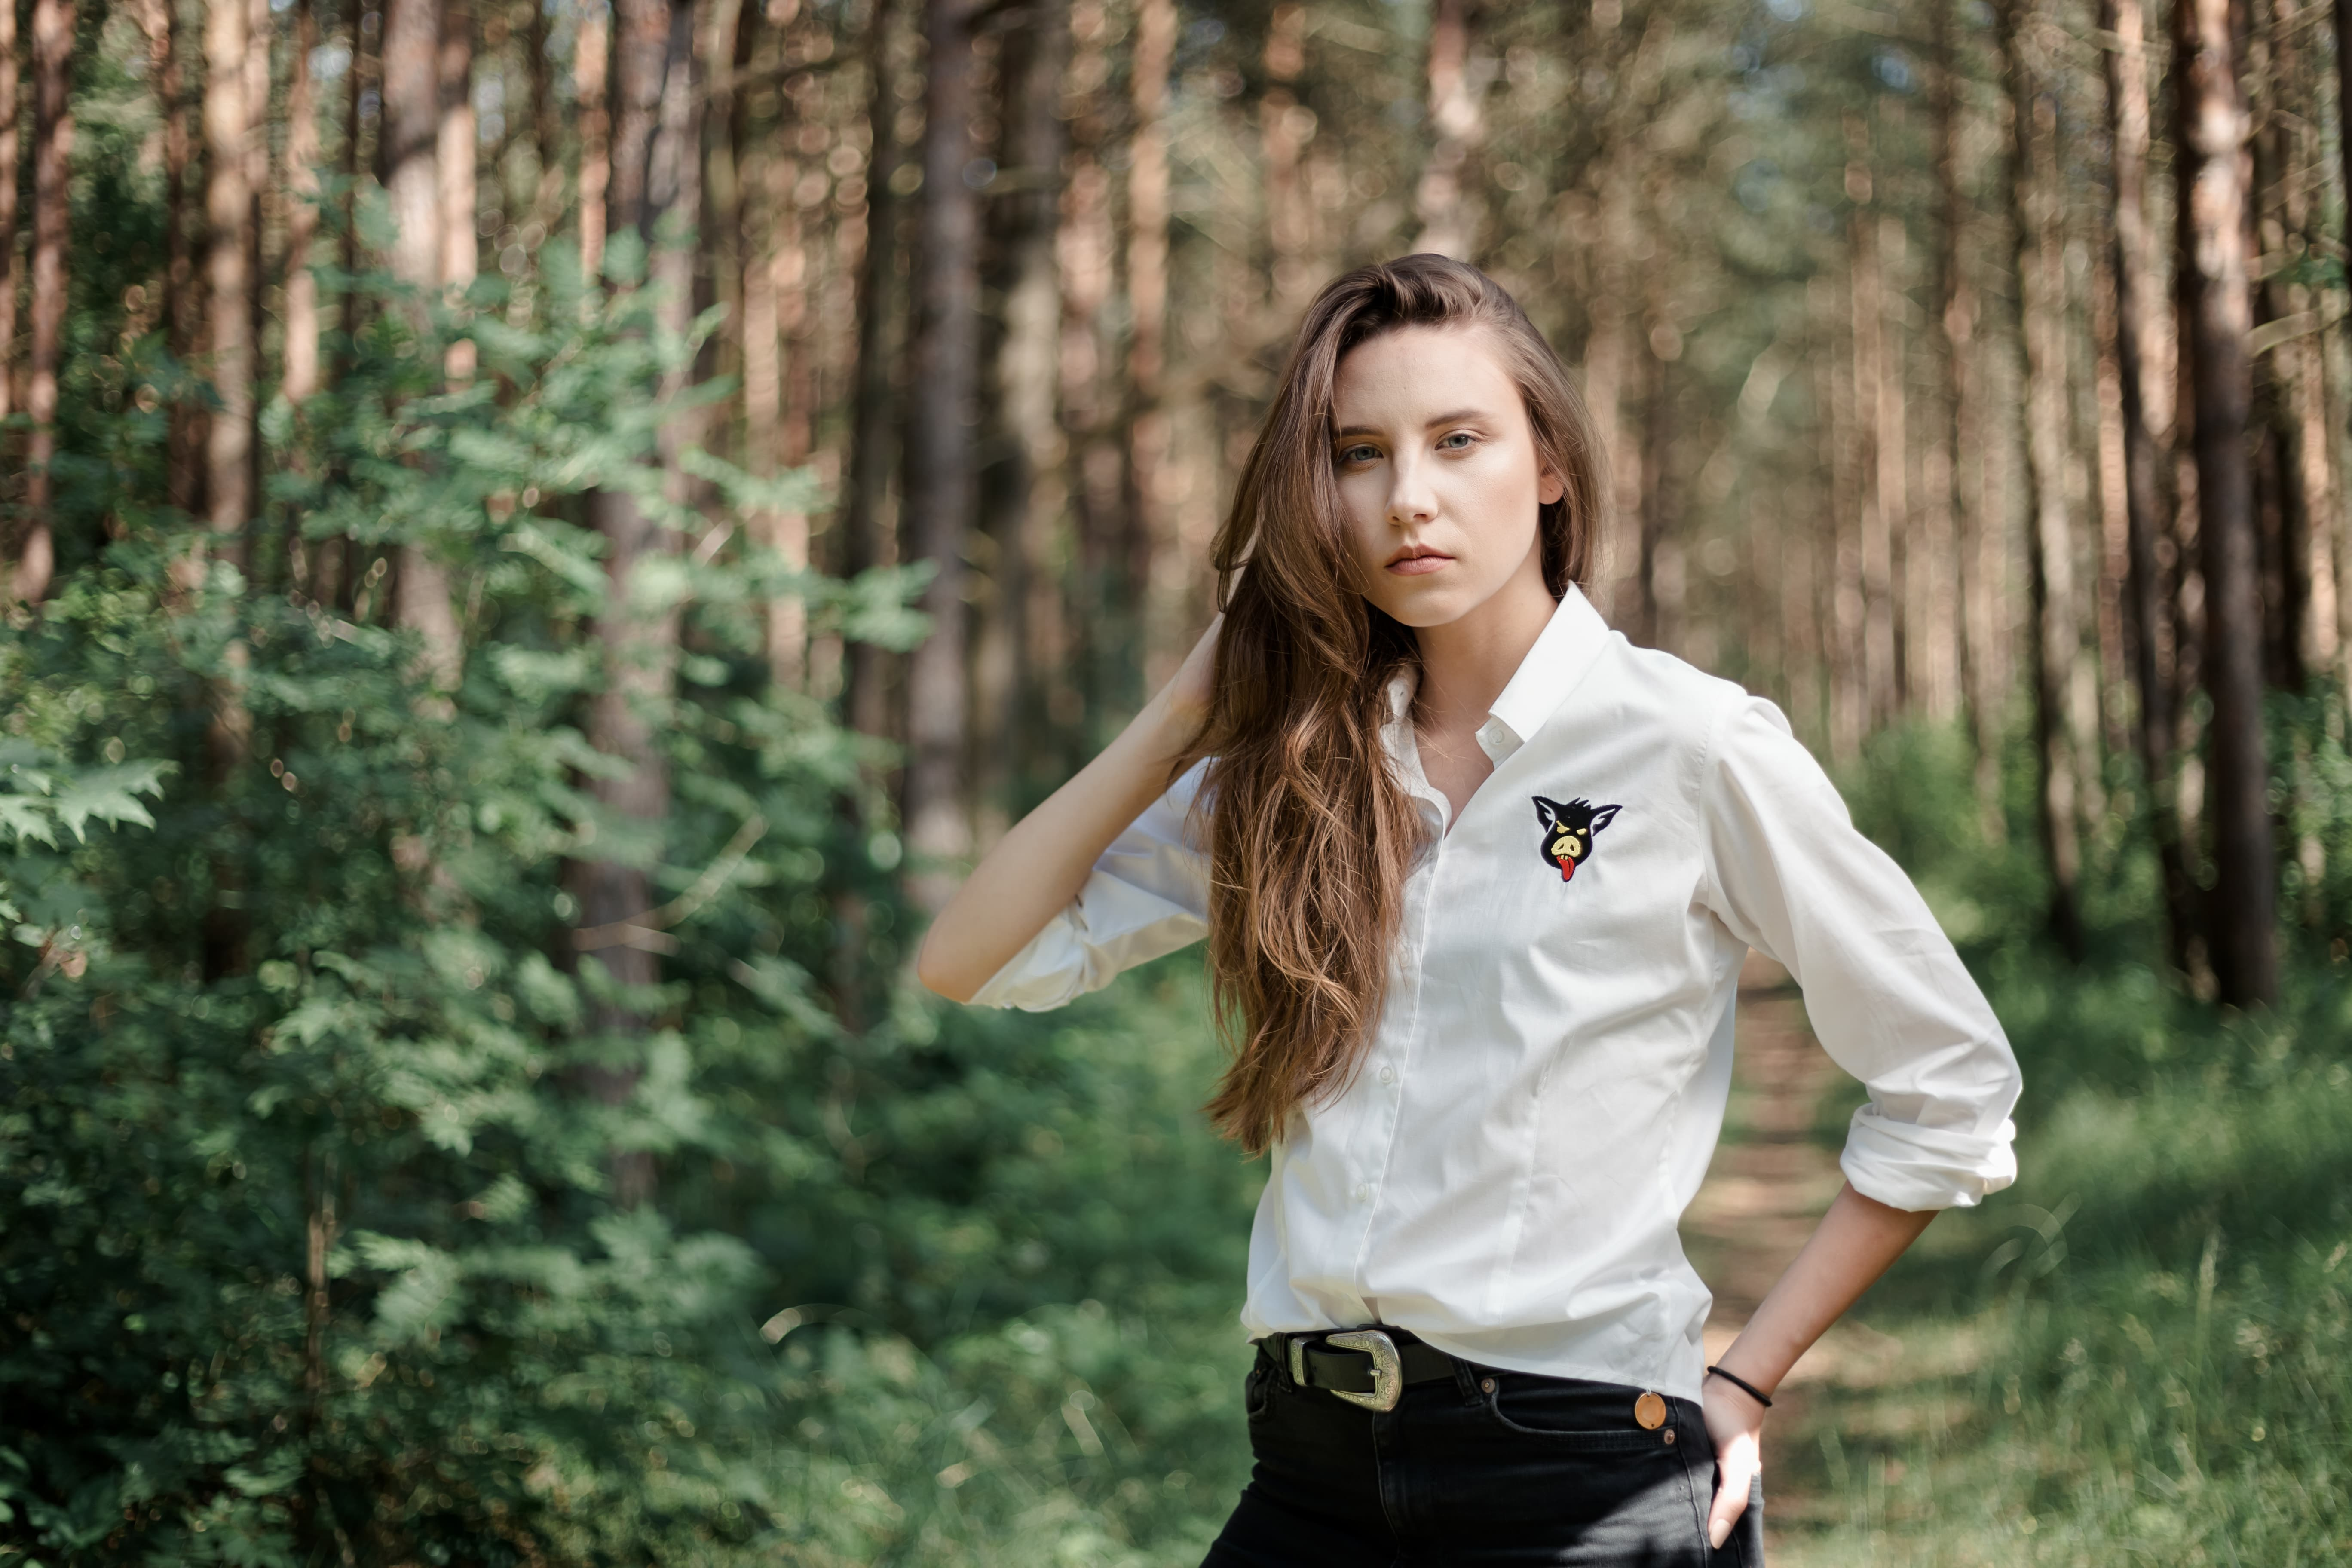 girl in a white shirt and long hair in the woods among the trees